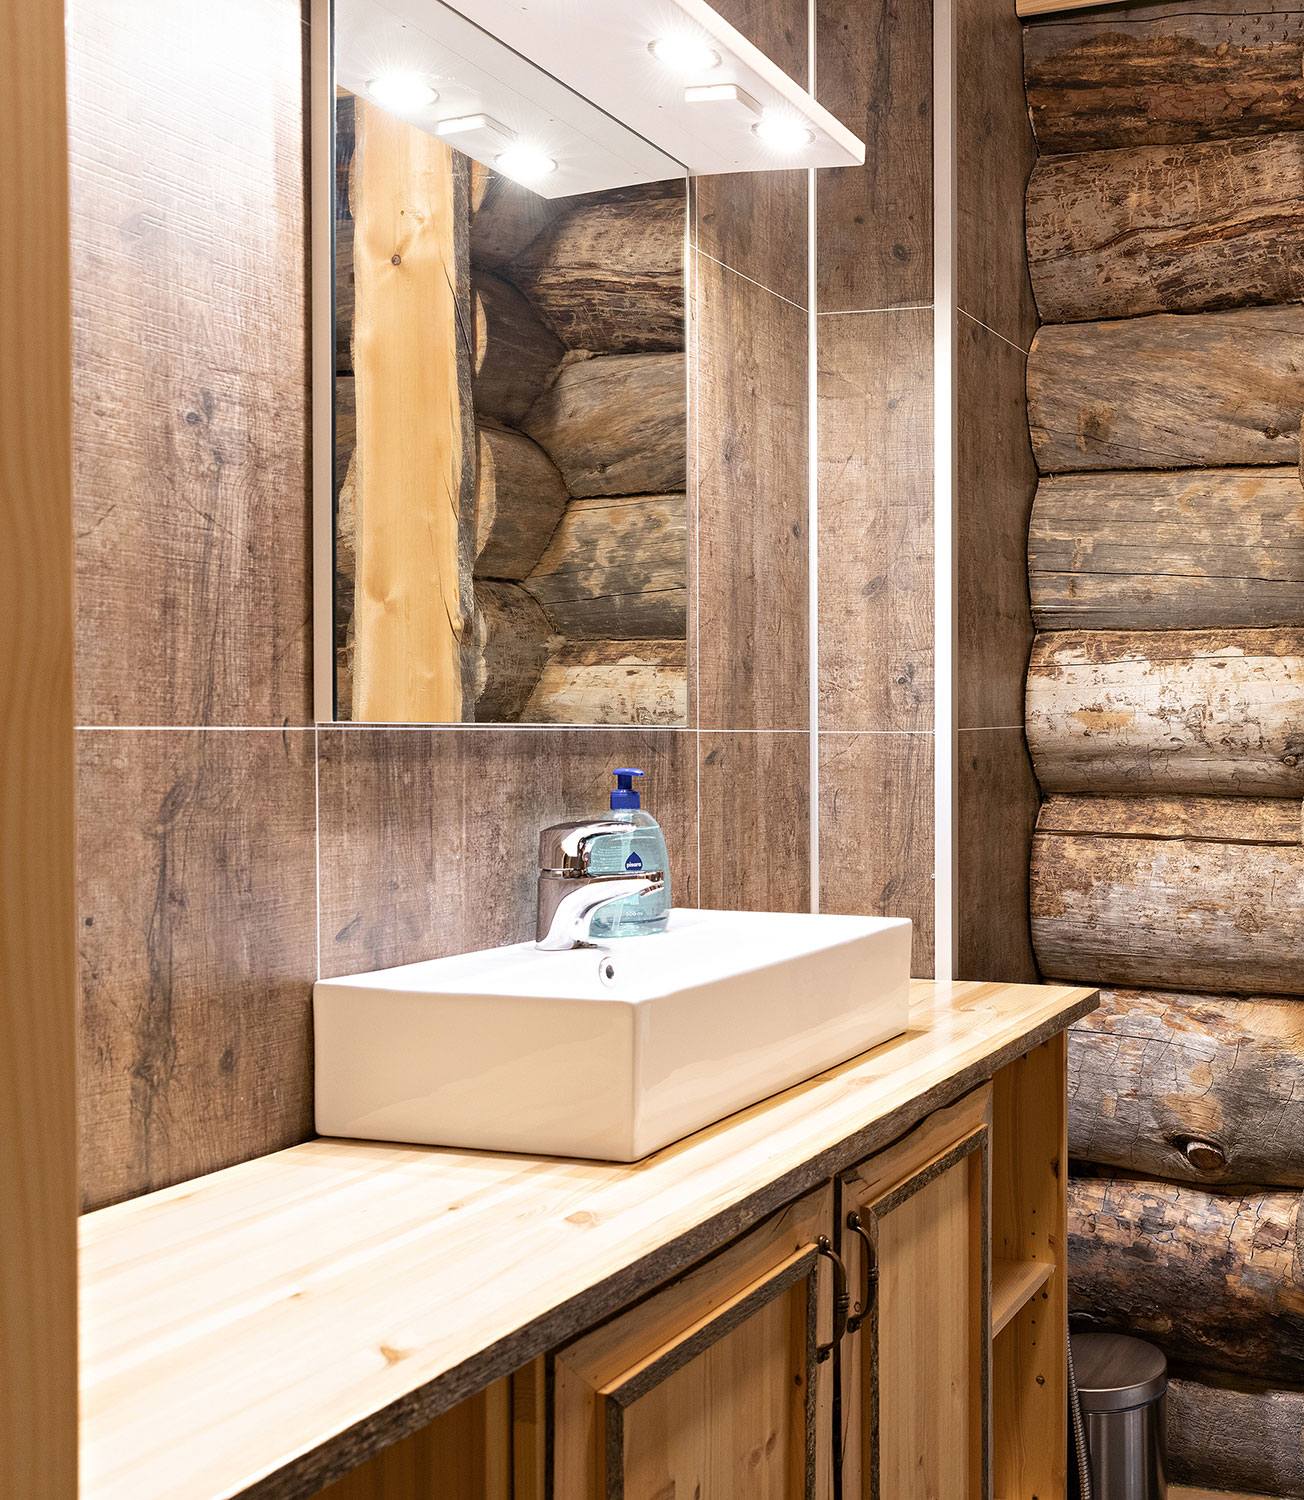 The interiors combine the rustic kelo-wood with clean, nordic design.